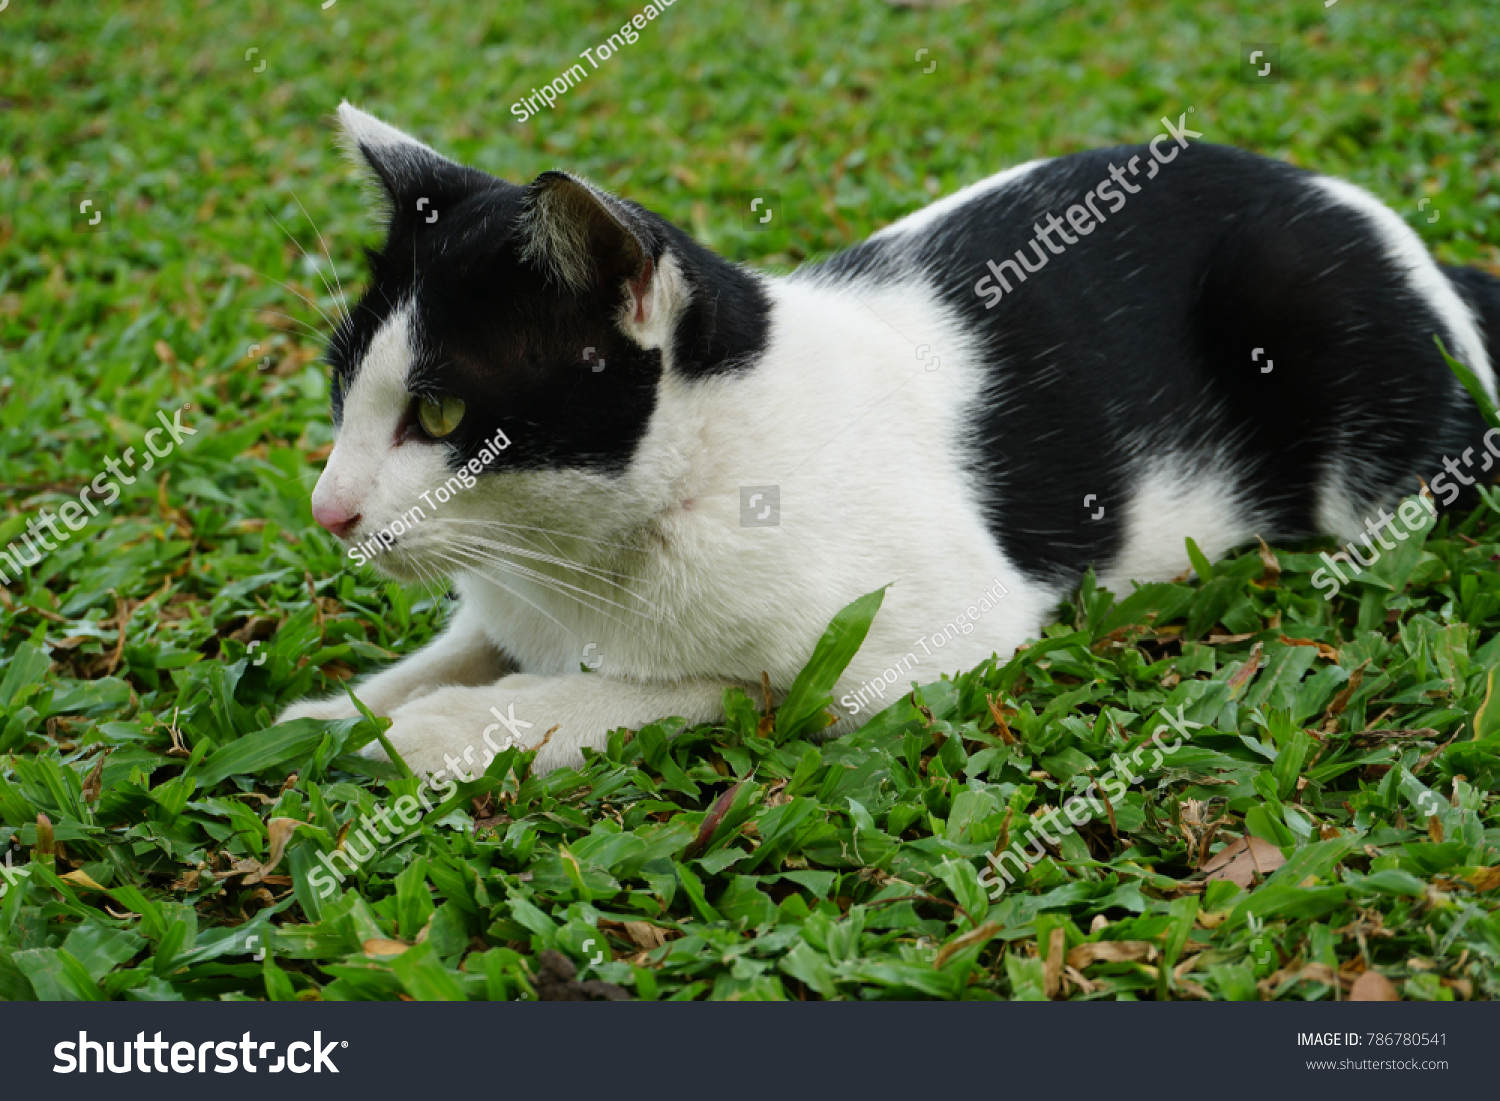 Cats Similar Anatomy Other Felids Strong Stock Photo (Royalty Free ...